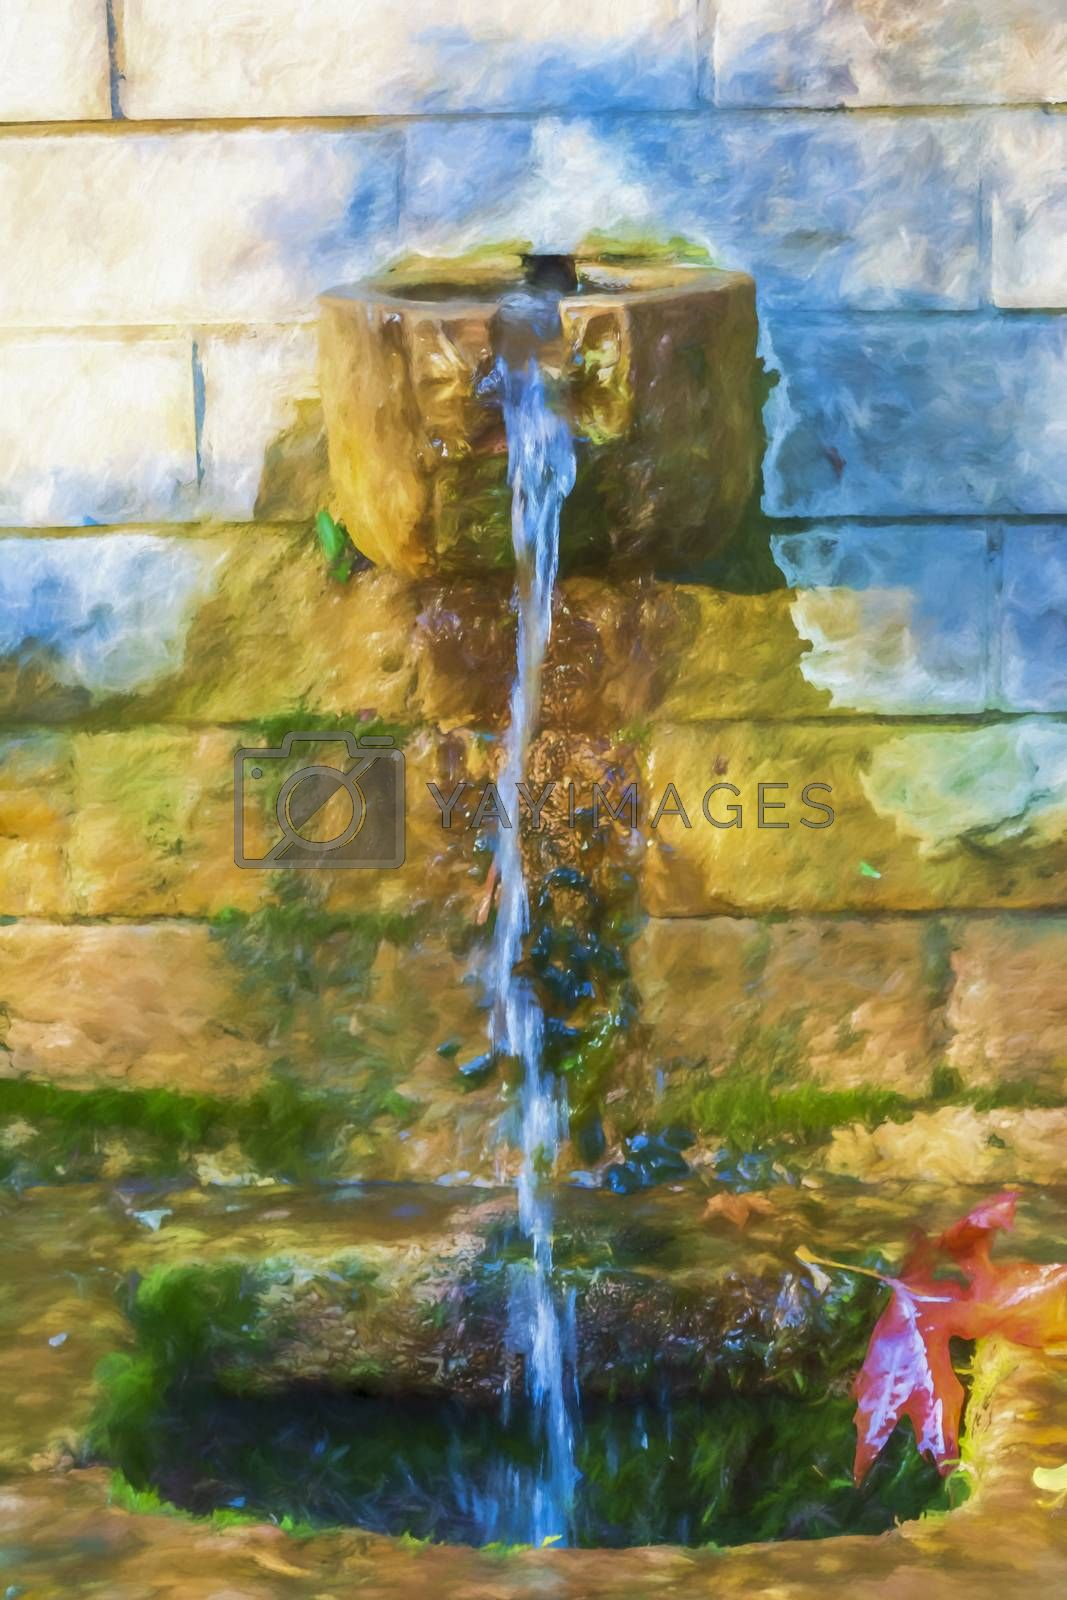 Fountain and leaf on stone wall - Digital paint